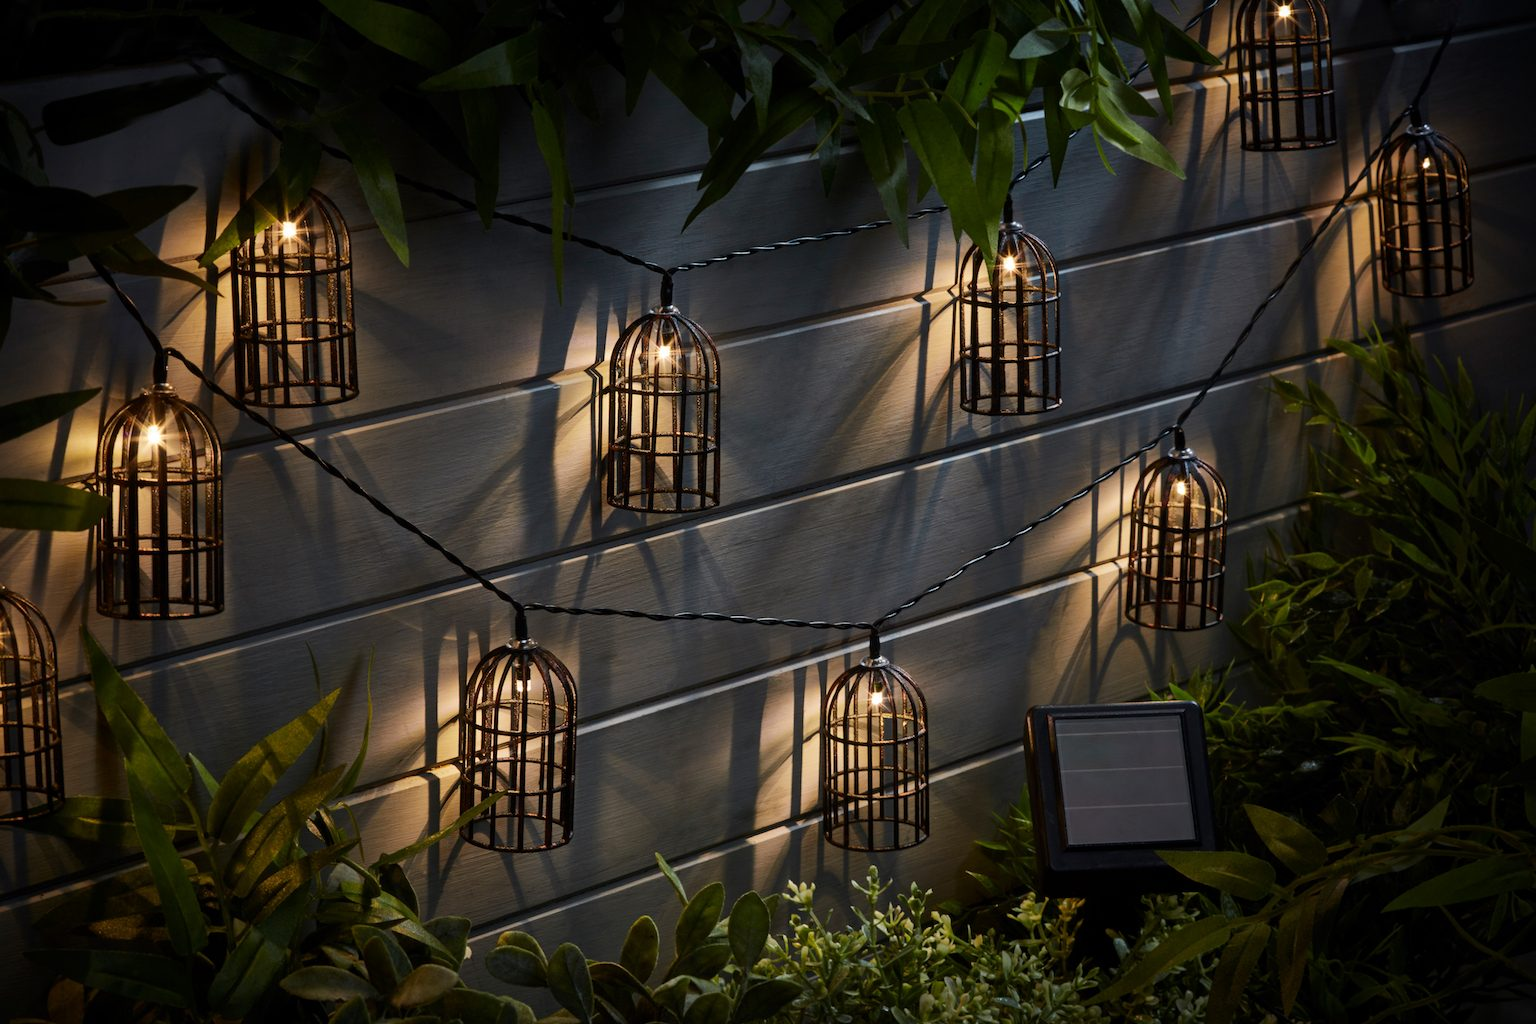 Birdcage Solar Lights